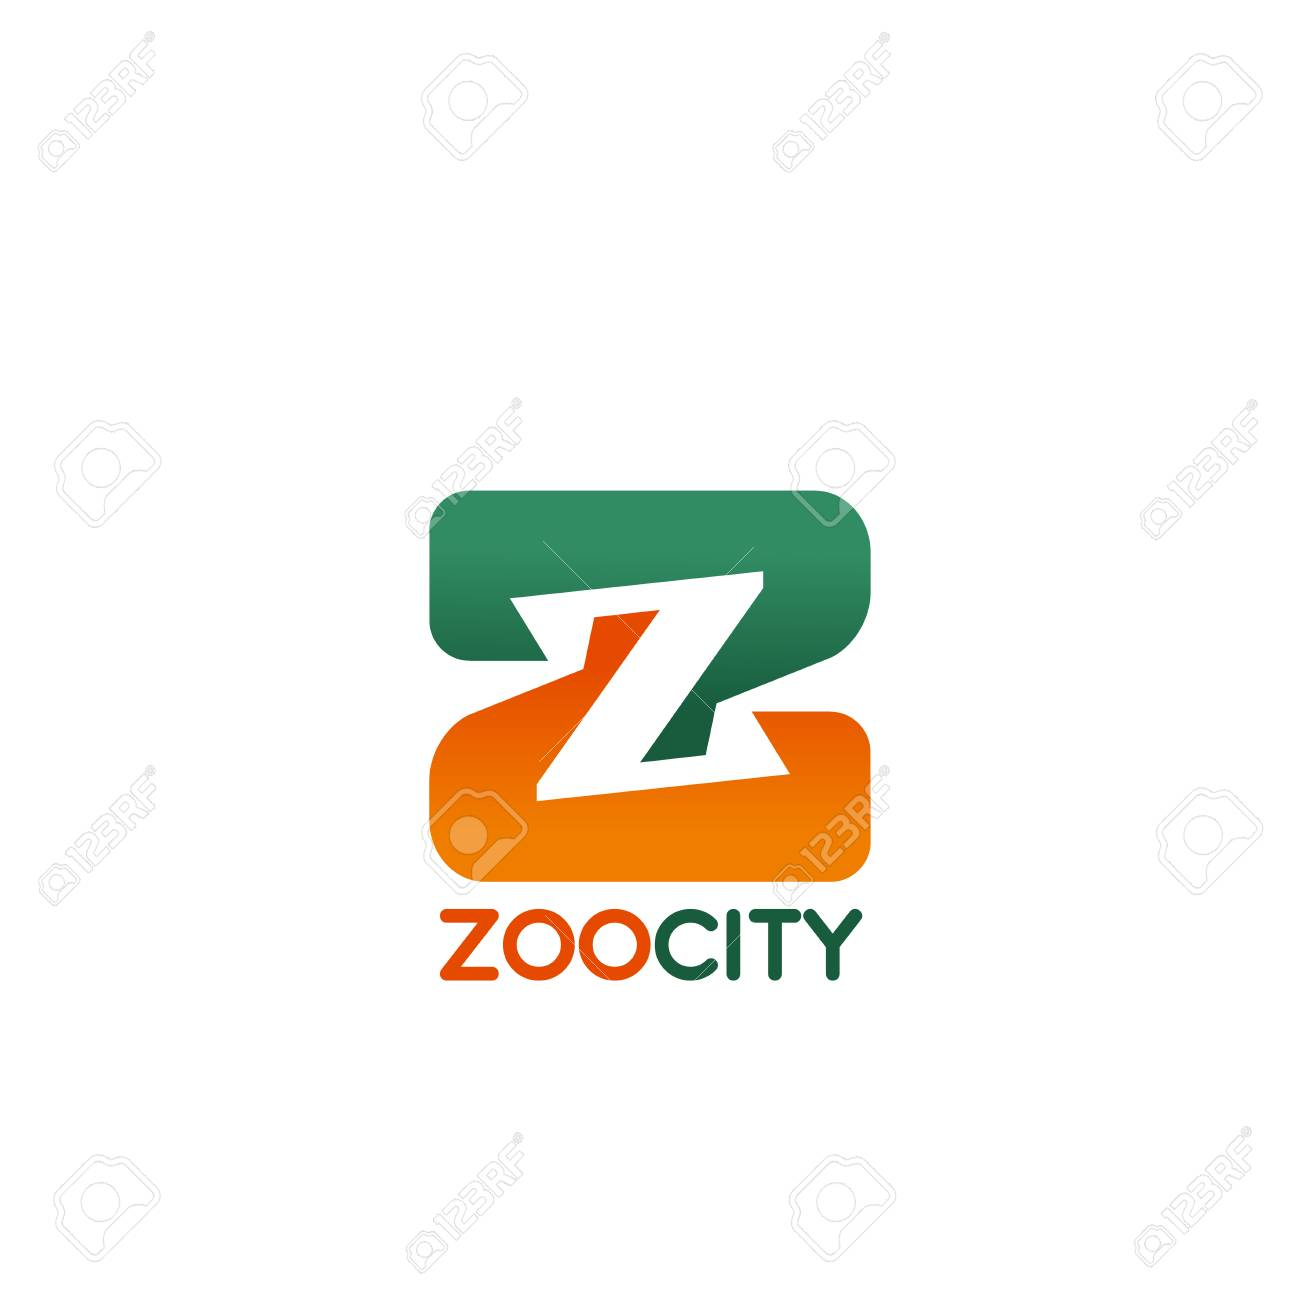 Zoo city letter Z icon for public animal park or pet store and